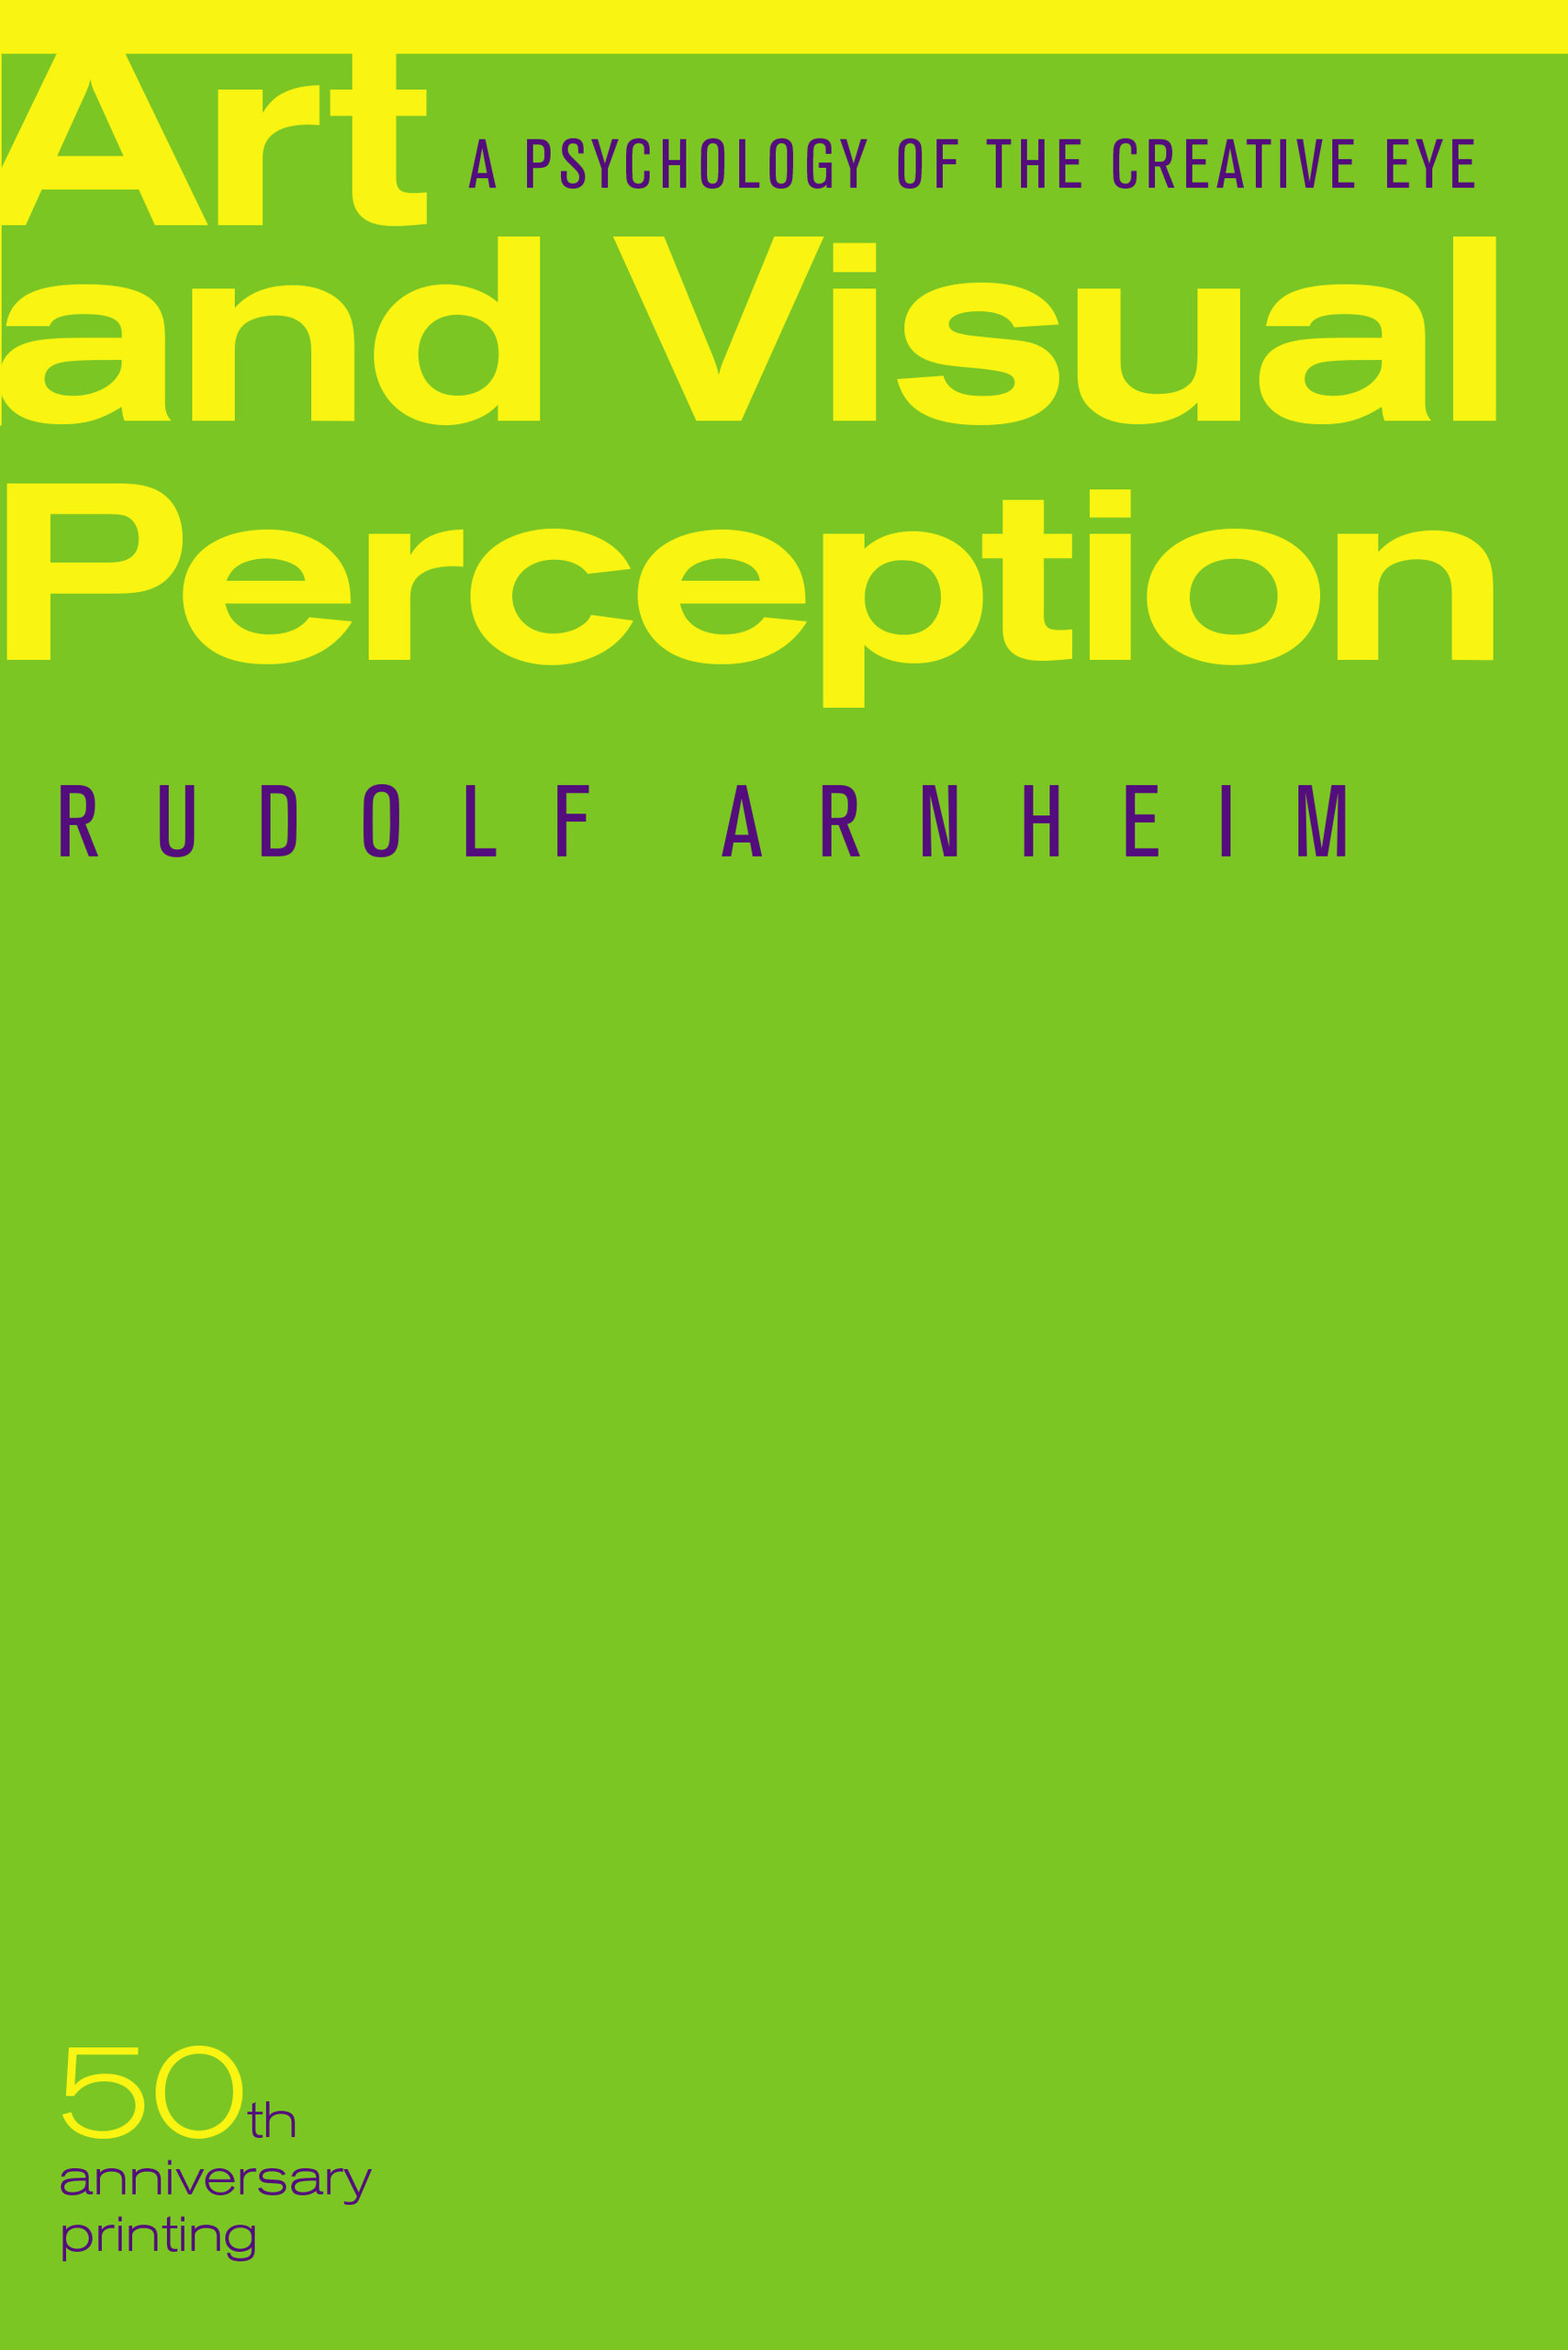 Art and visual perception by rudolf arnheim paperback university download cover image thecheapjerseys Gallery